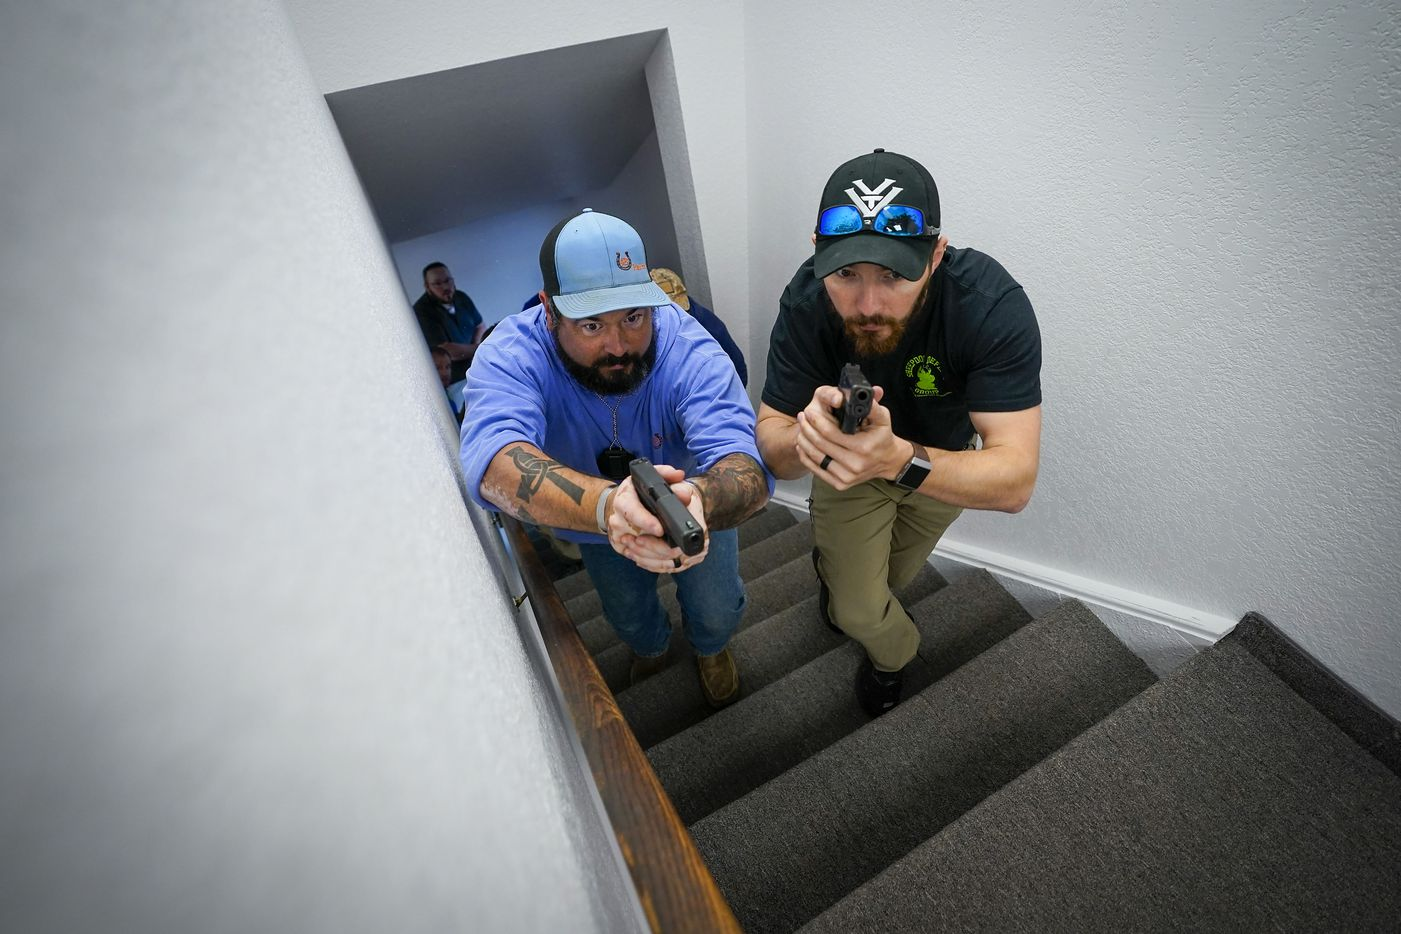 Tyler Brooks (left), from Cornerstone Community Church in Springtown, TX and Dave Harding, from Eagles View Church in Fort Worth, search for a shooter in a simulation during a Sheepdog Defense Group armed security programs church safety training session at Cornerstone Community Church on Sunday, Feb. 2, 2020 in Springtown, Texas.